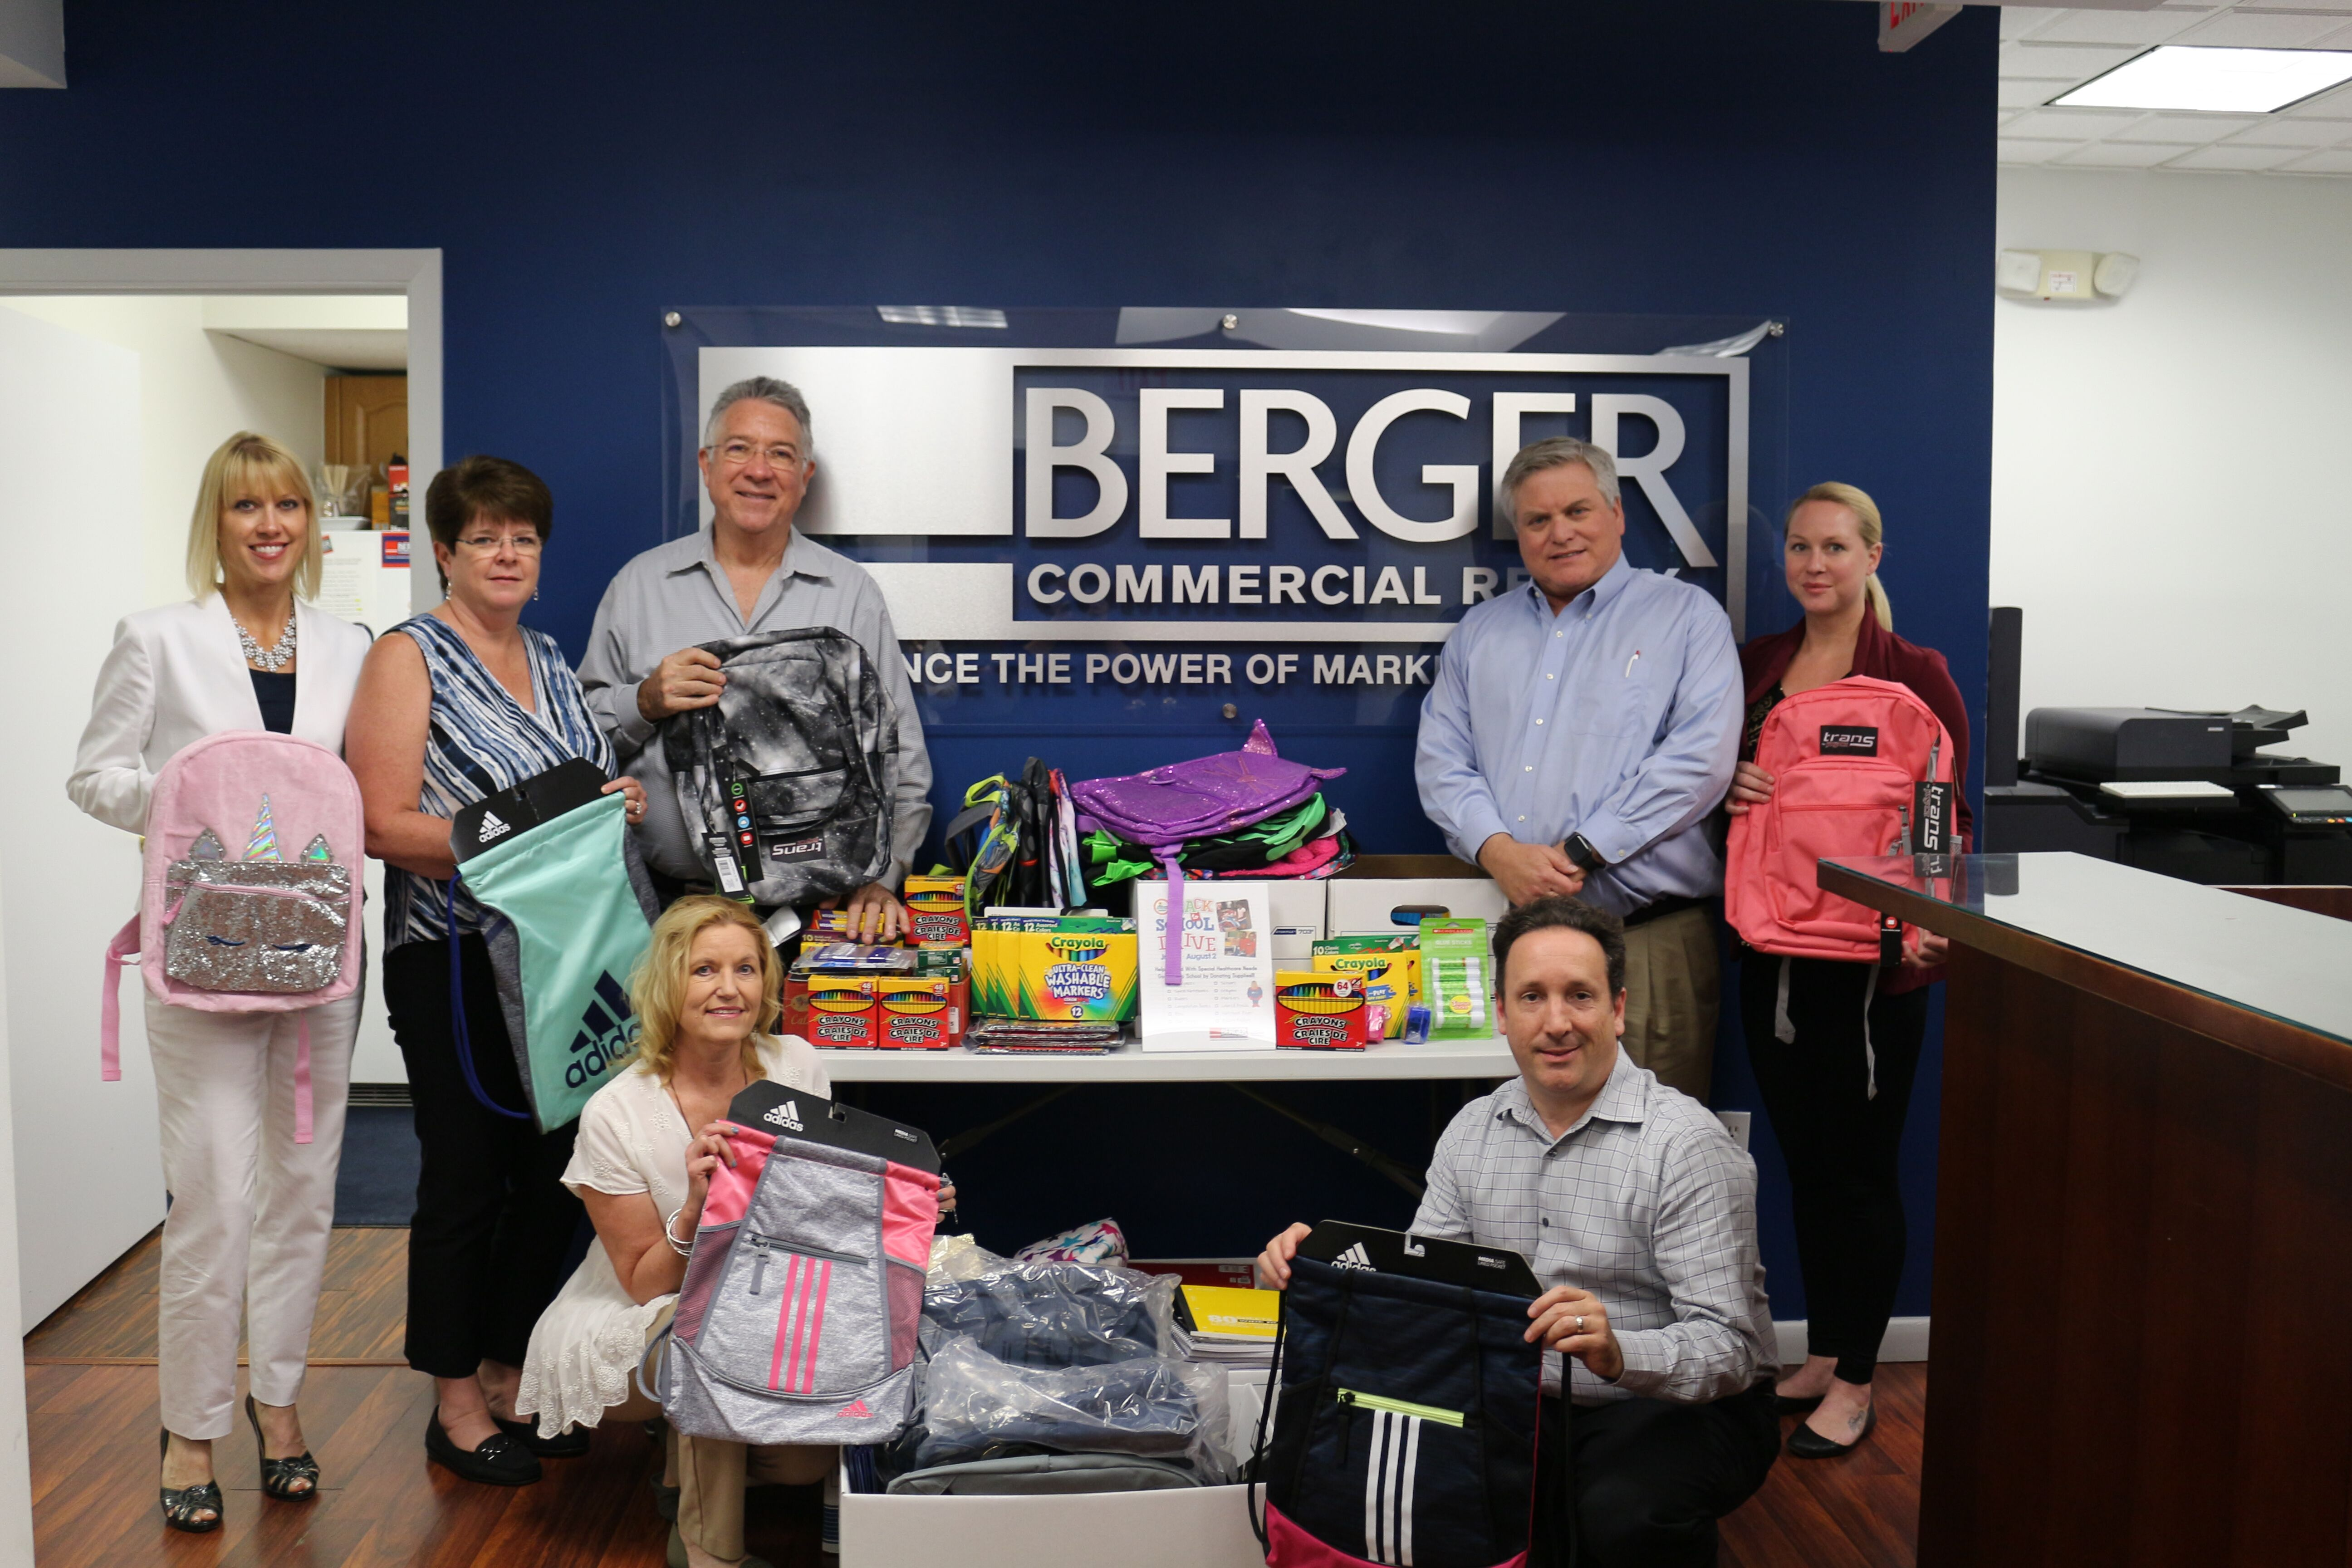 Back to School drive for pediatric patients of Children's Diagnostic & Treatment Center